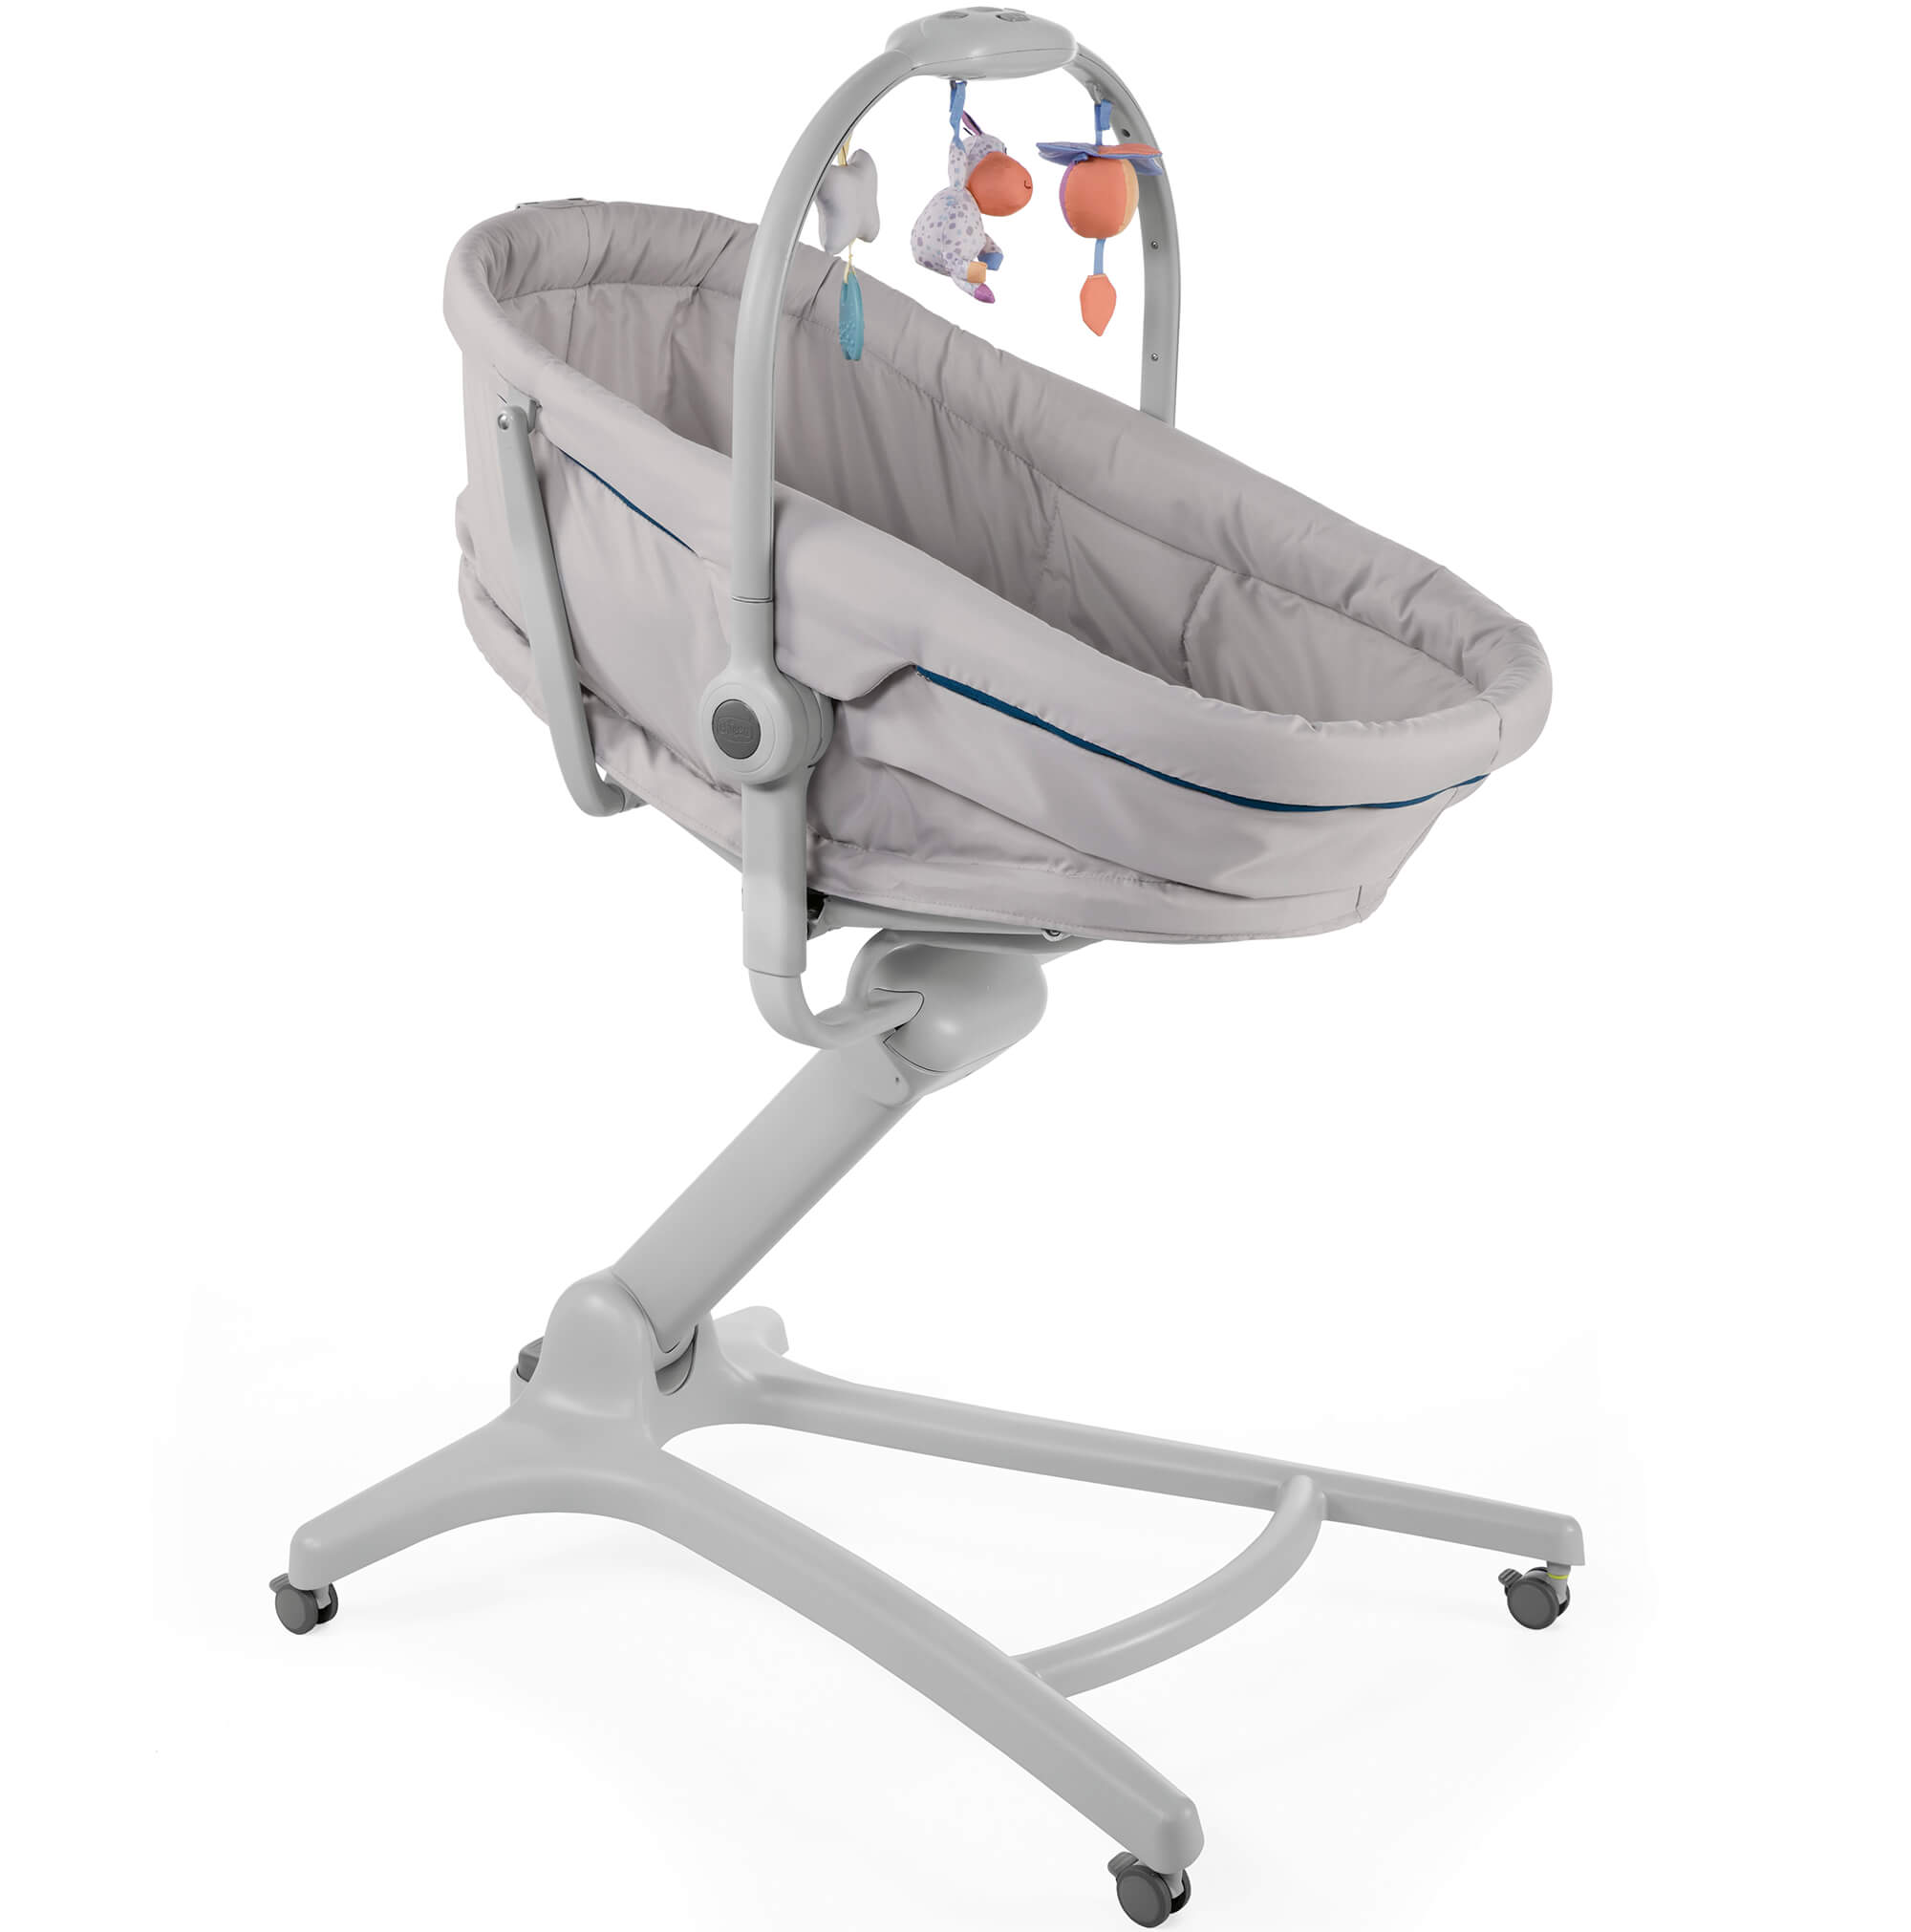 Miraculous Chicco Baby Hug 4 In 1 Glacial Bassinet Reclining High And Child Chair Pabps2019 Chair Design Images Pabps2019Com